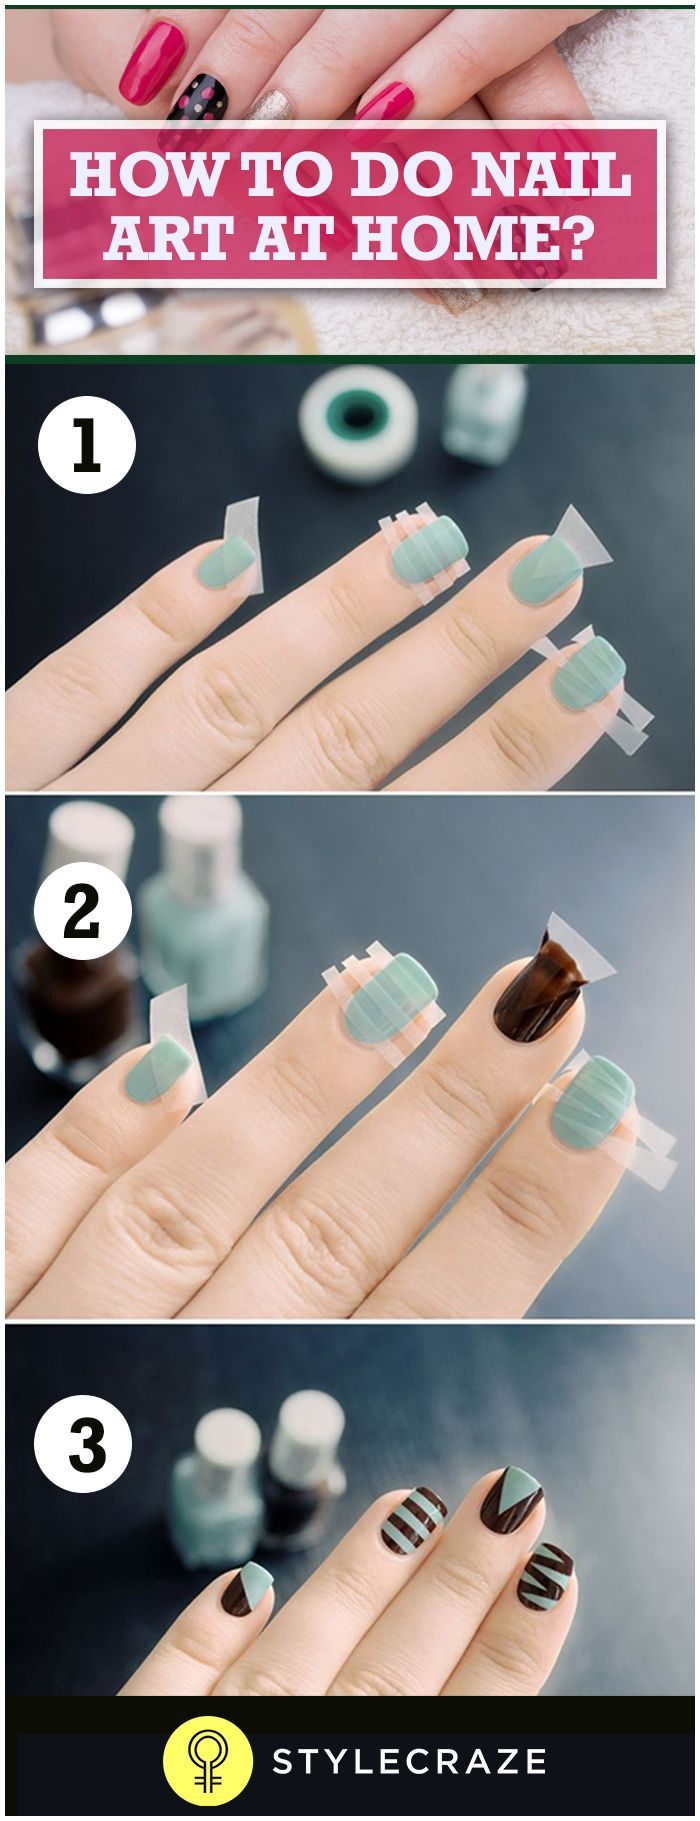 We often see complicated tutorials of intricate designs and are often put off by it. Something a little simpler would definitely draw more people in. Maintaining your nails is honestly the best accessory since you just need to do them only about, once a week.